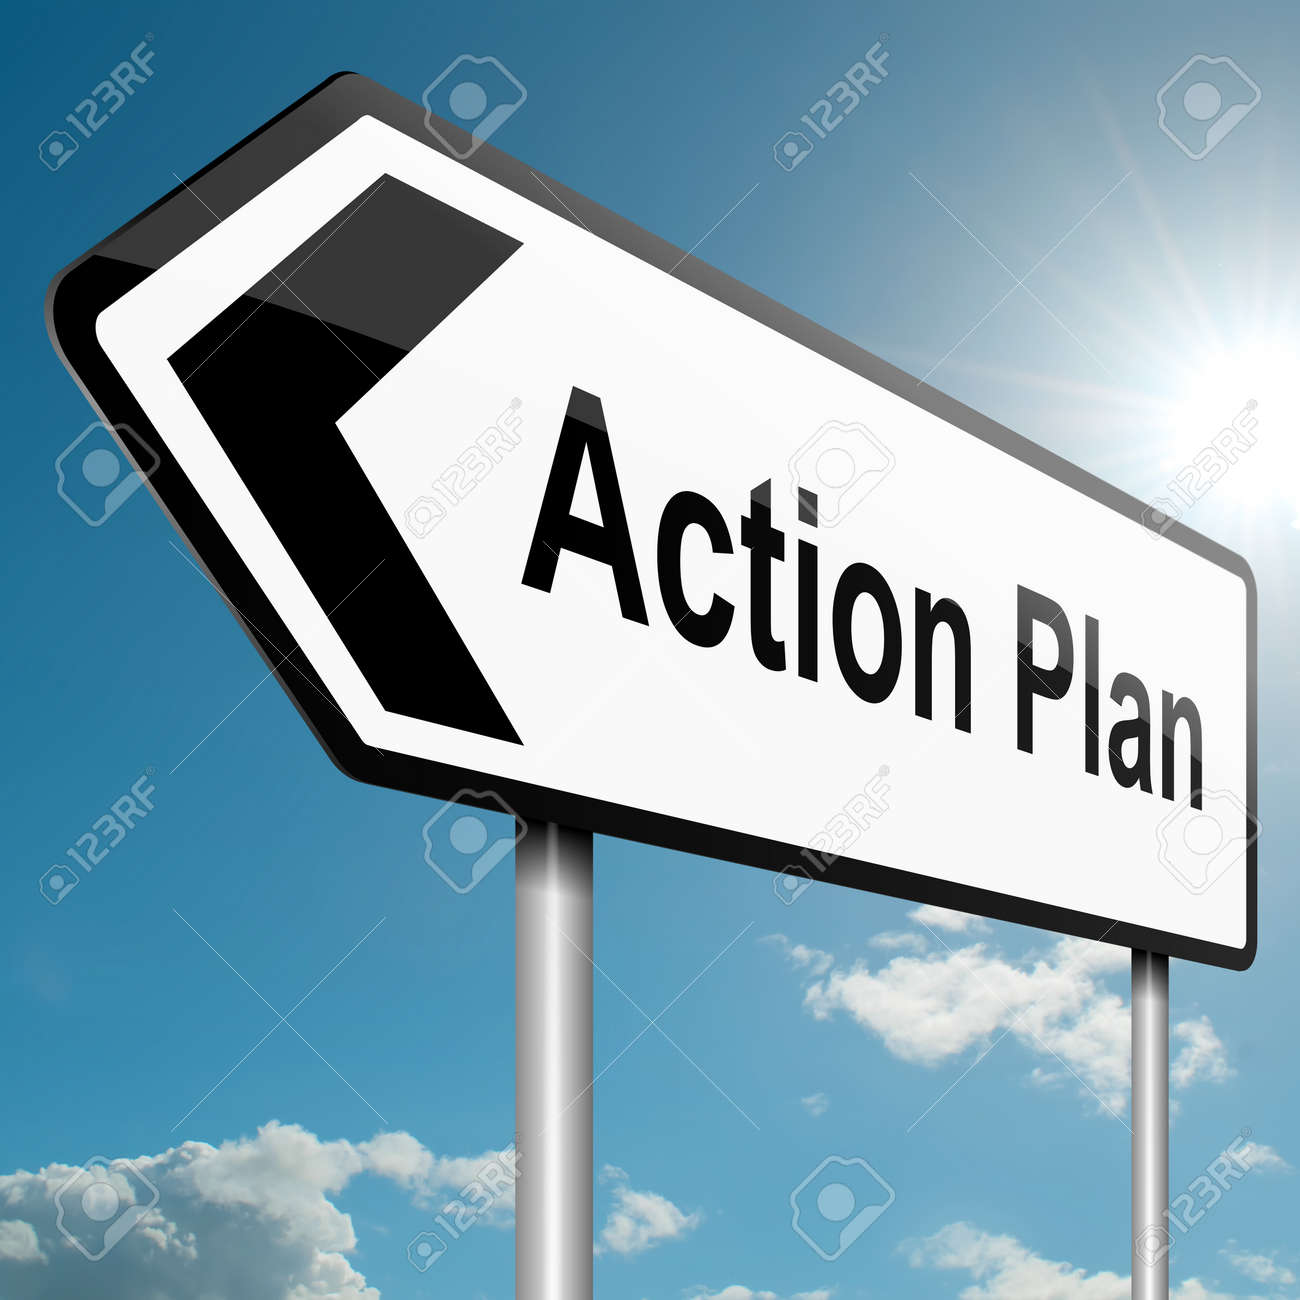 Action Plan Images Pictures Royalty Free Action Plan – Free Action Plans